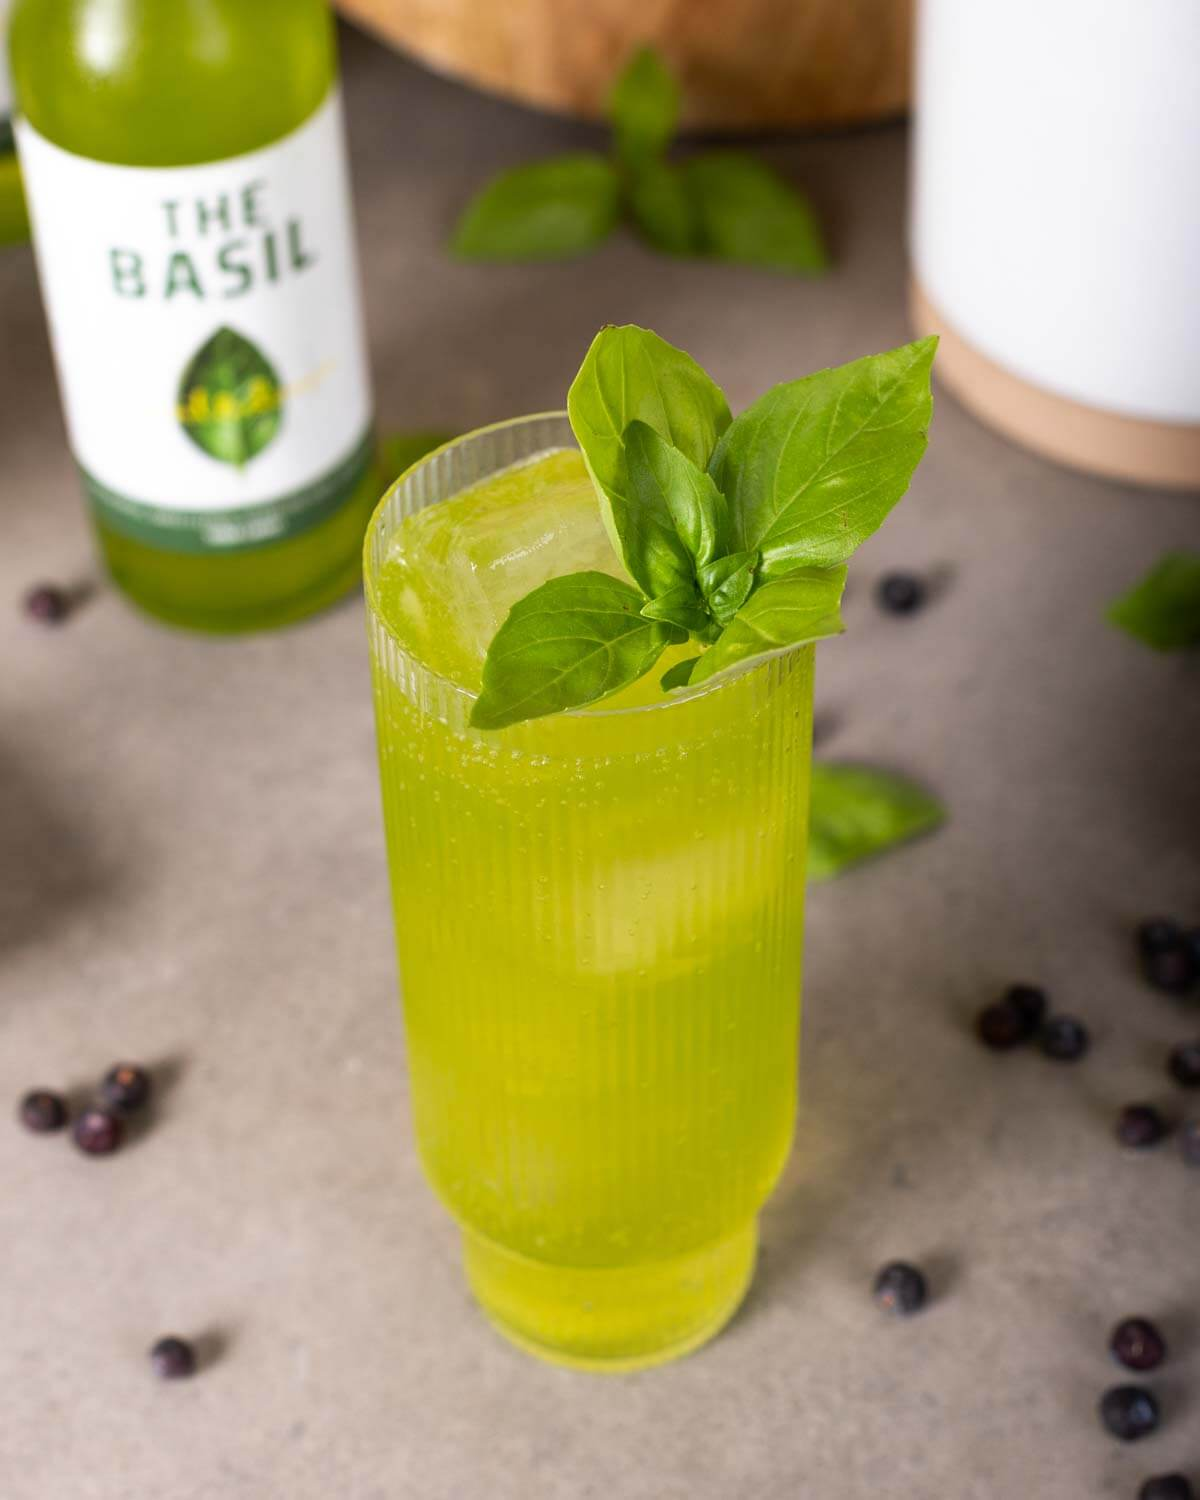 BIRDS and The Basil mit BIRDS Dry Gin